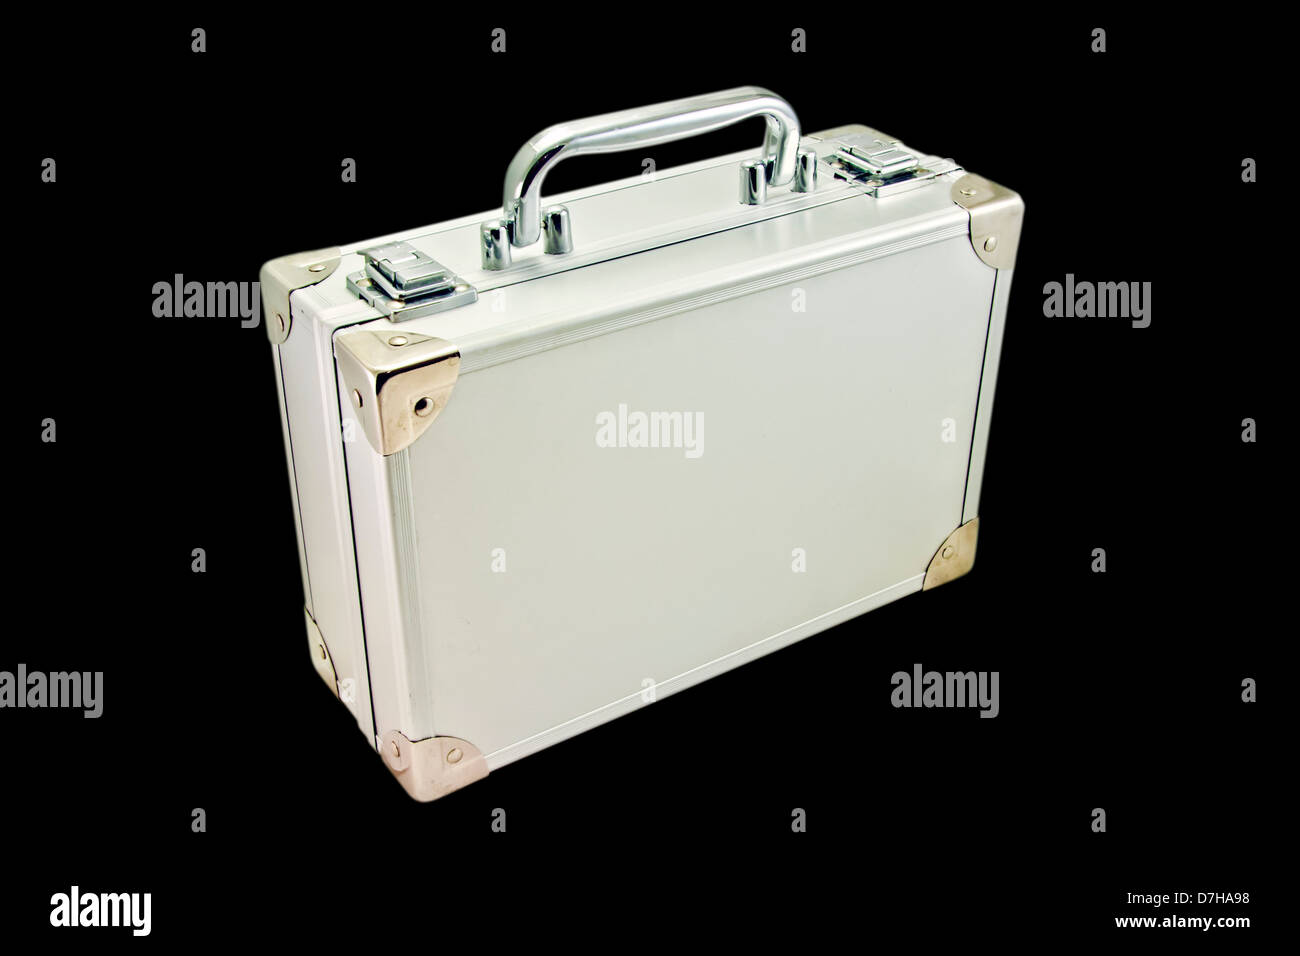 silver suitcase - Stock Image